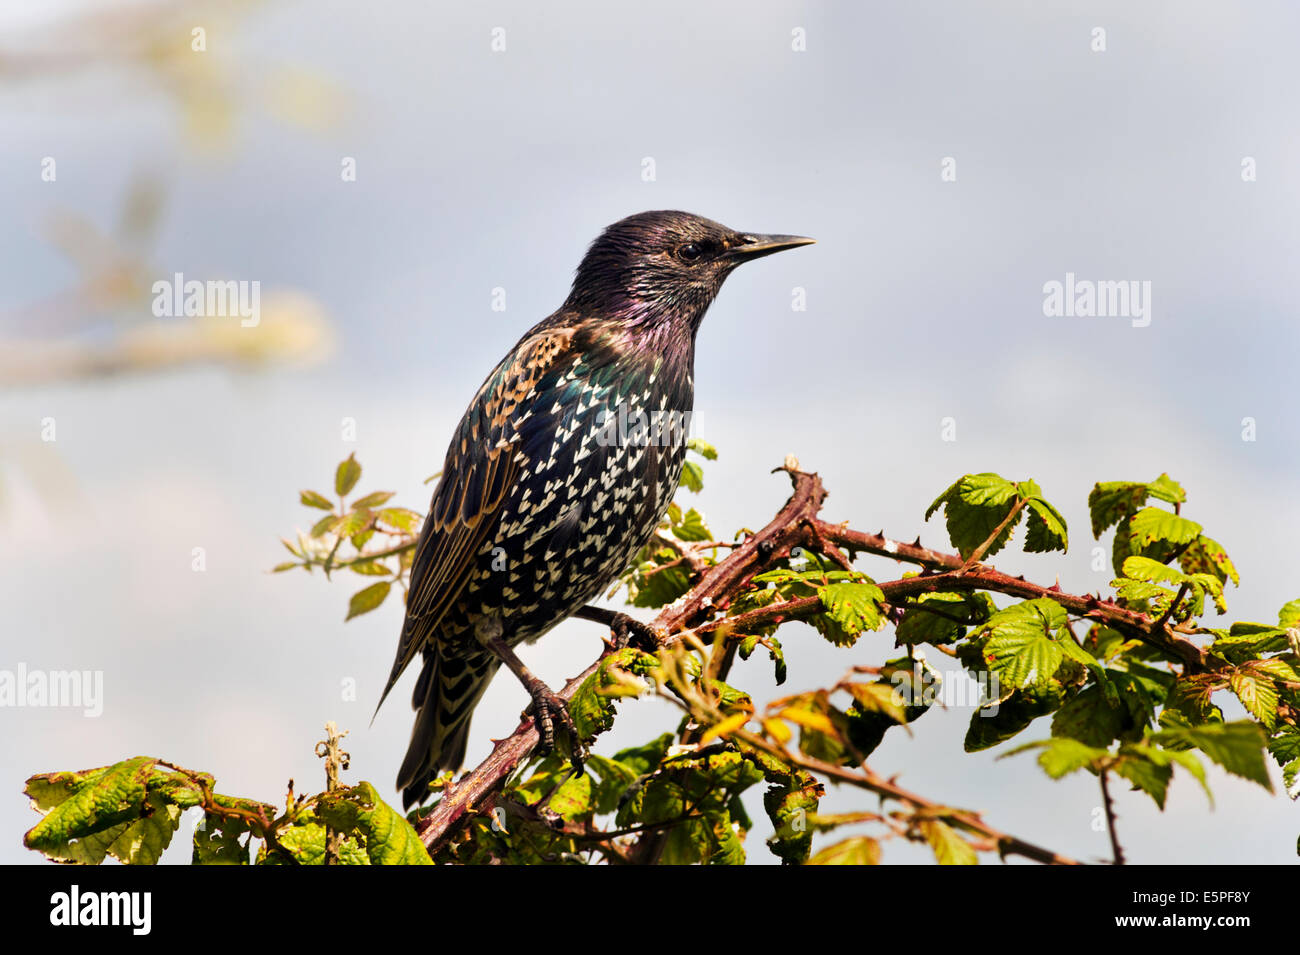 Starling, Latin name Sturnidae, perched on brambles, Southsea, Hampshire. - Stock Image